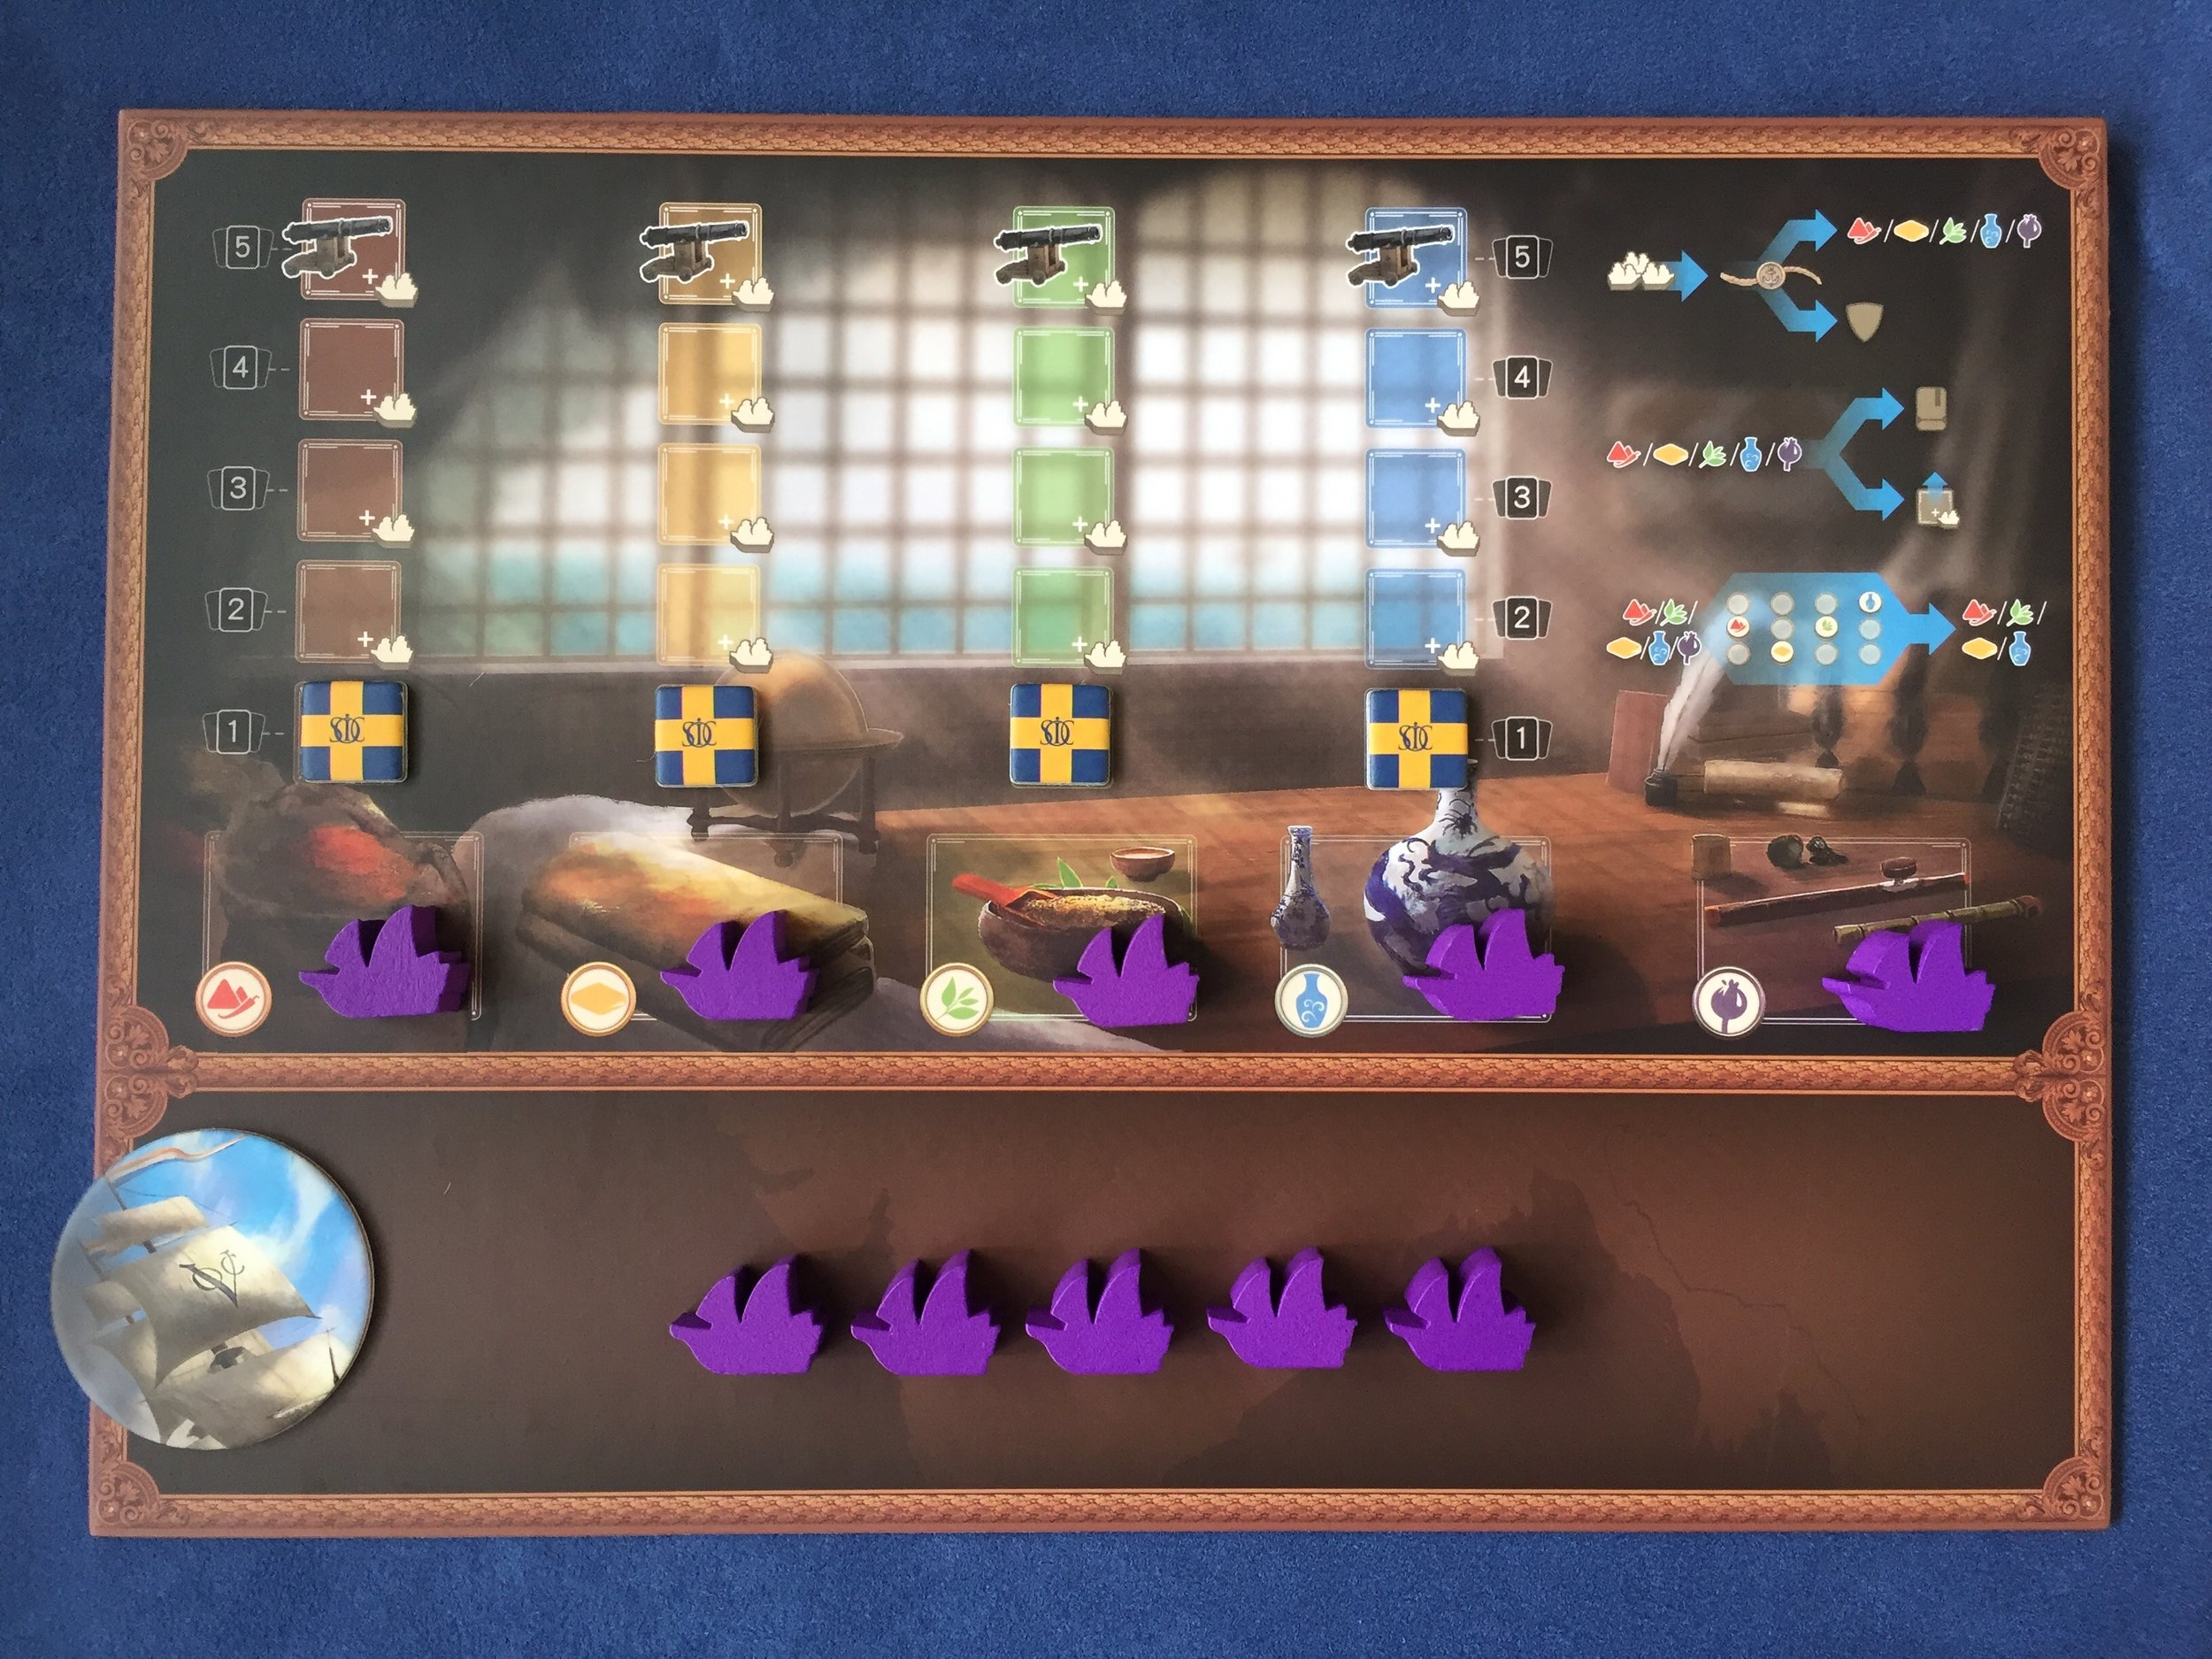 4 identical player boards. The 5th player expansion comes with purple ships!